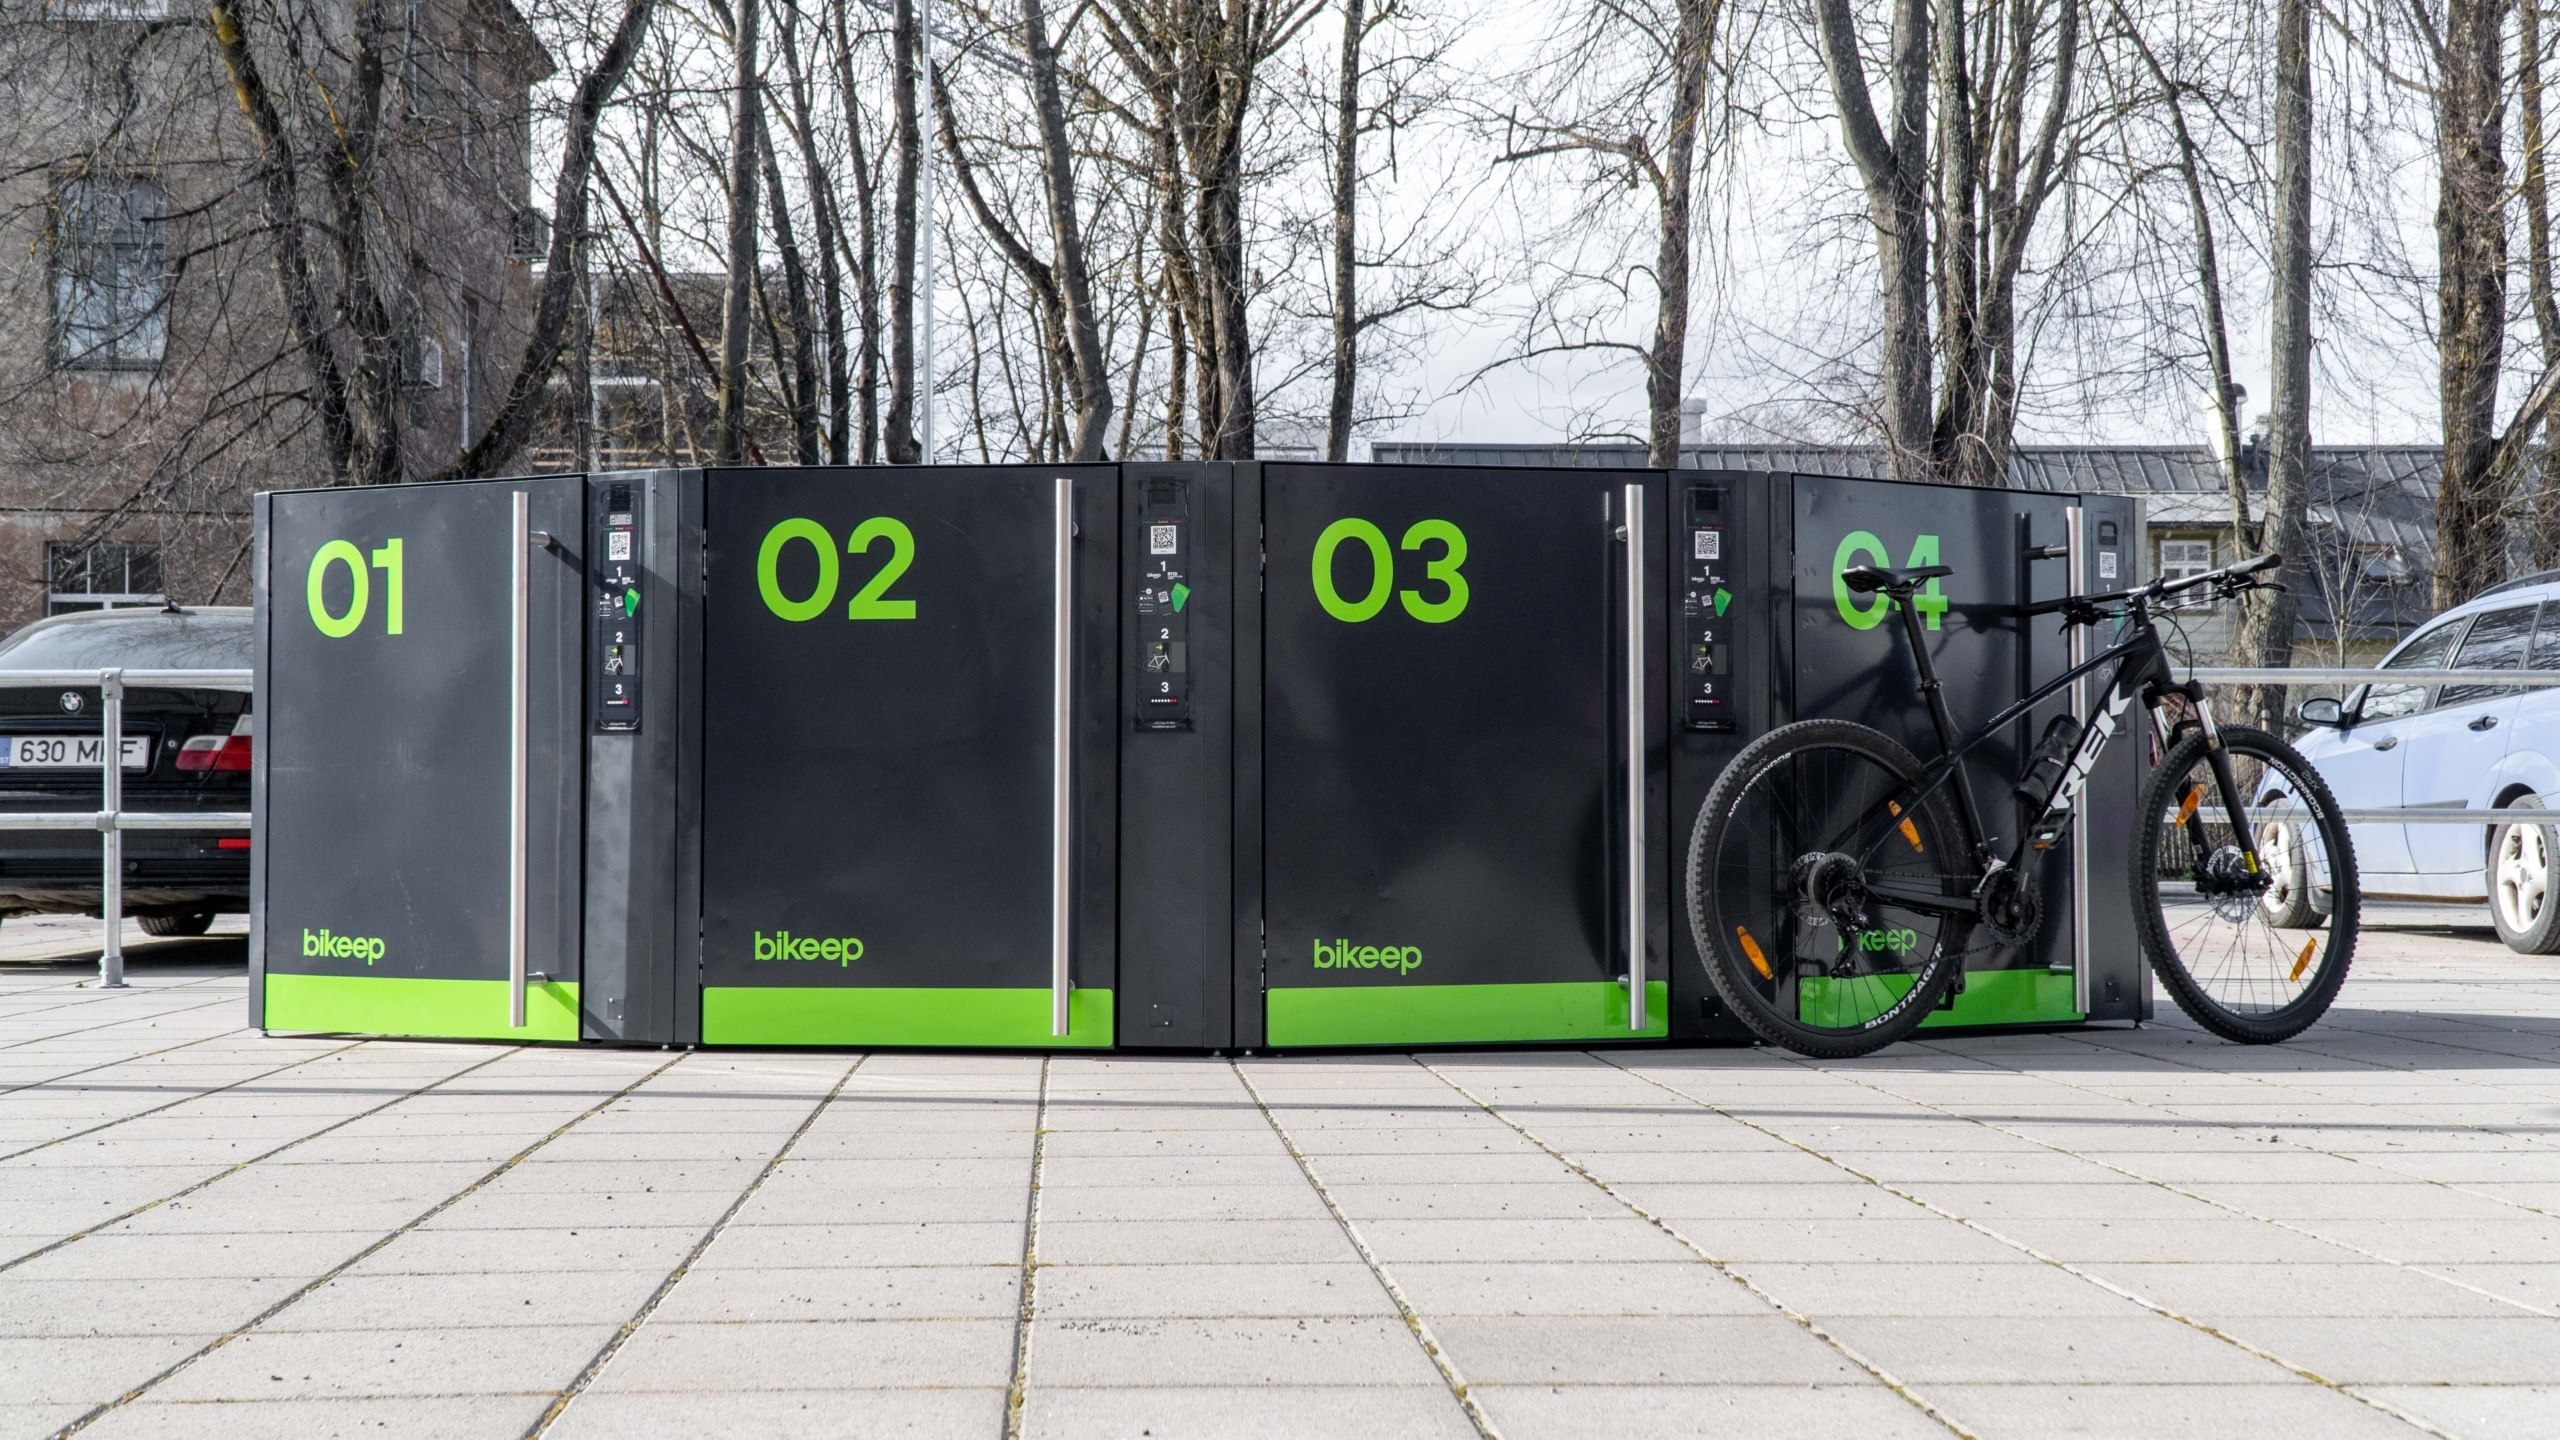 Tallinn installs Bikeep Smart lockers in public transport stops in the city centre as part of its smart city concept